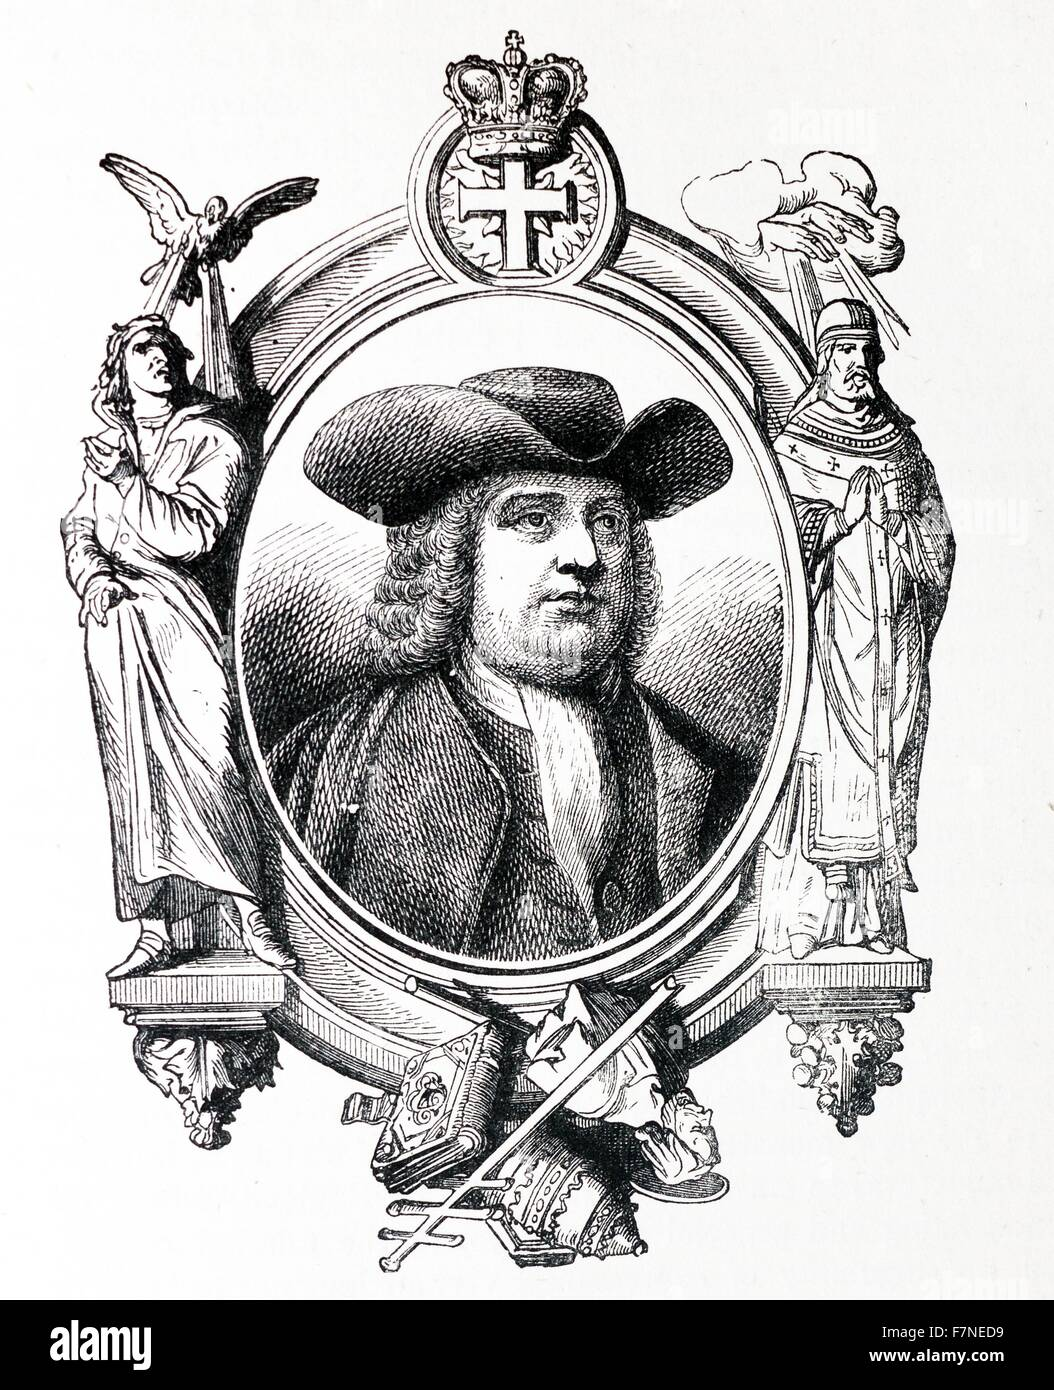 The Founder of a Republic, William Penn (1644-1718). Stock Photo